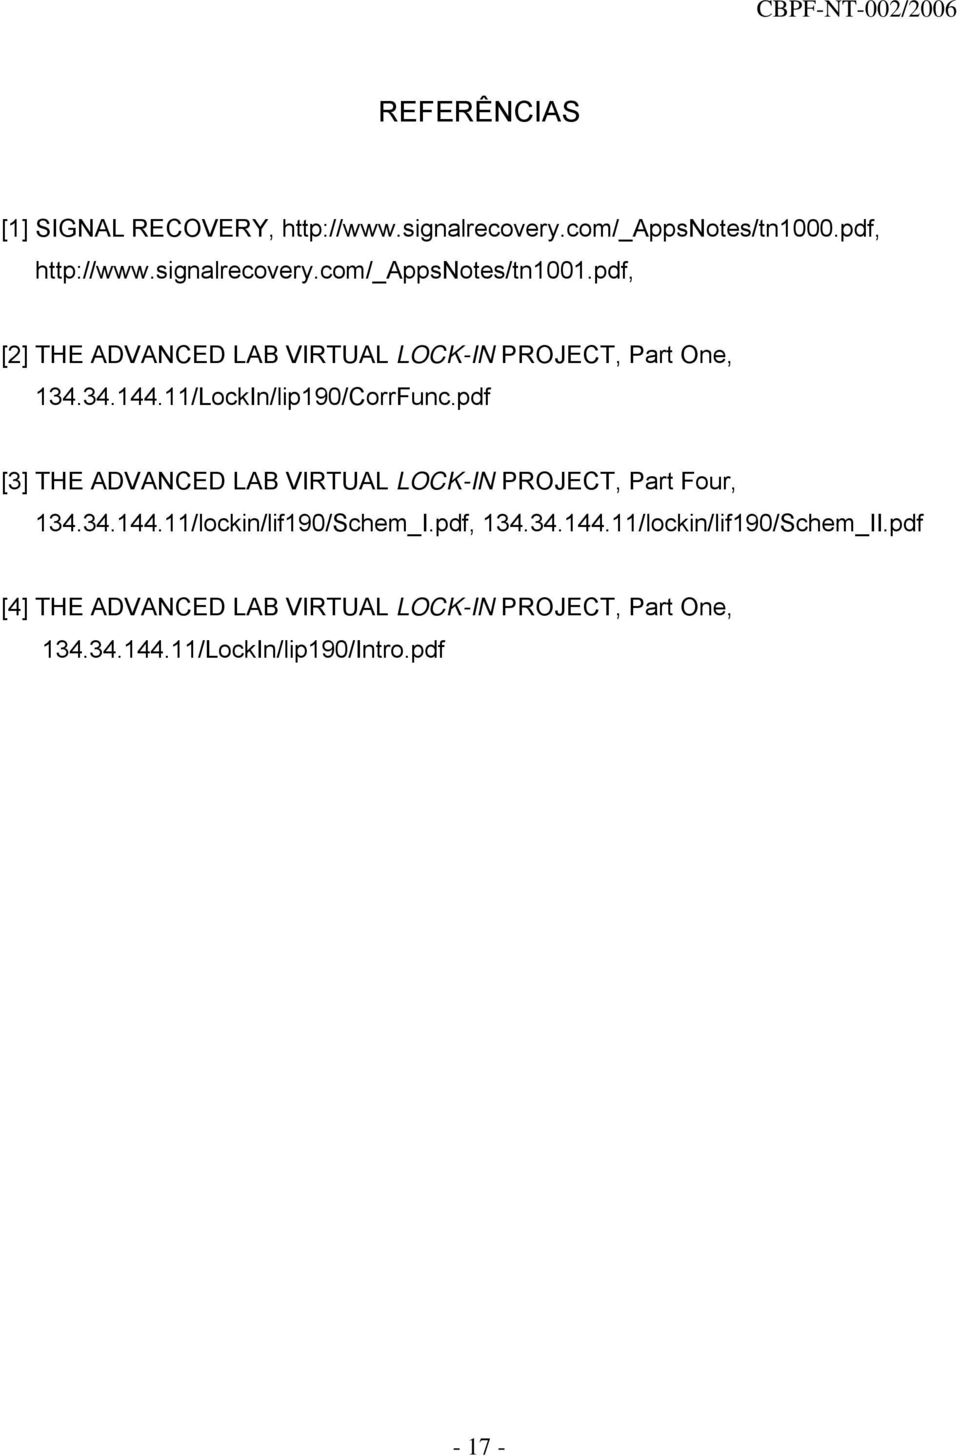 pdf [3] THE ADVANCED LAB VIRTUAL LOCK-IN PROJECT, Part Four, 134.34.144.11/lockin/lif190/Schem_I.pdf, 134.34.144.11/lockin/lif190/Schem_II.